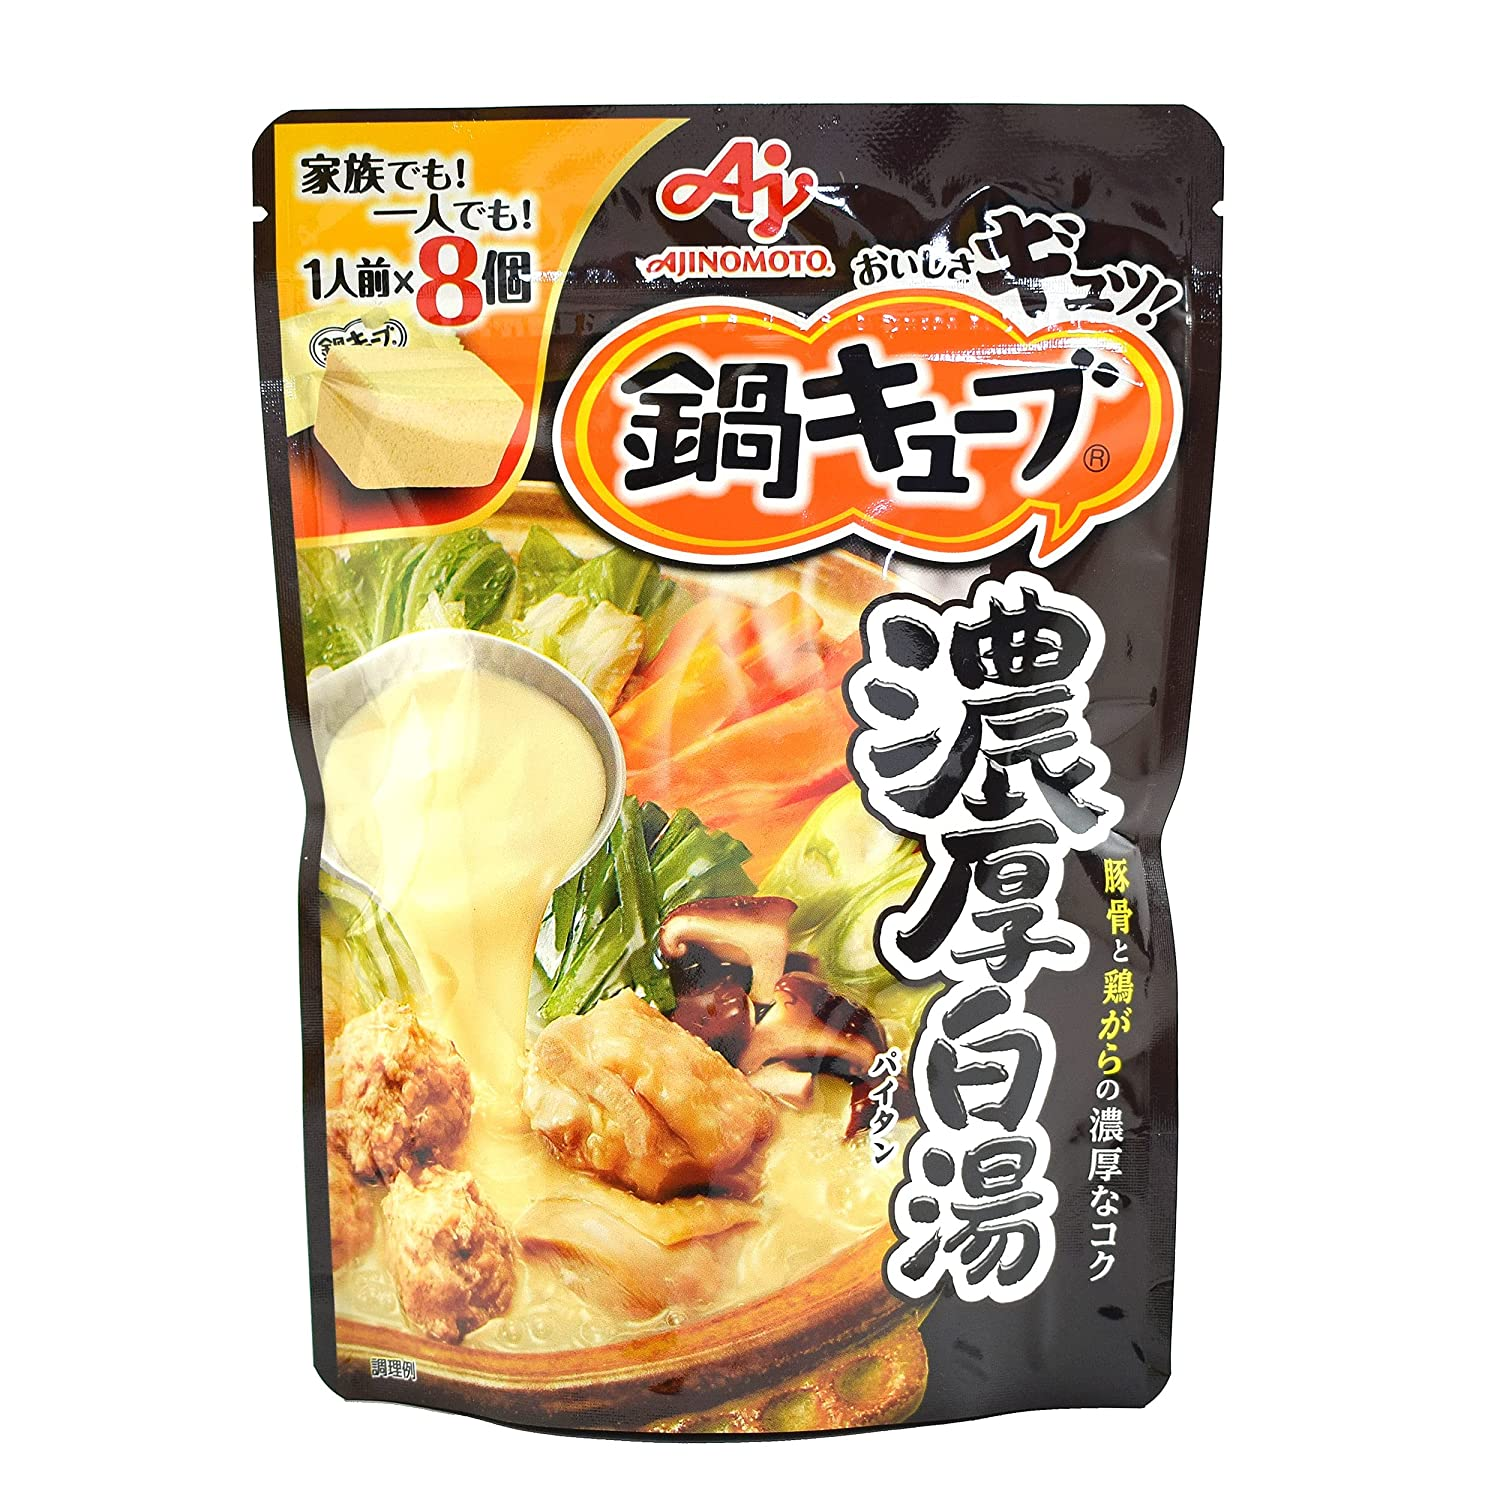 Japanese Soup Base Max 82% OFF Pork Chiken Ranking TOP1 Taste Nabe Cooking Pot Cube Hot